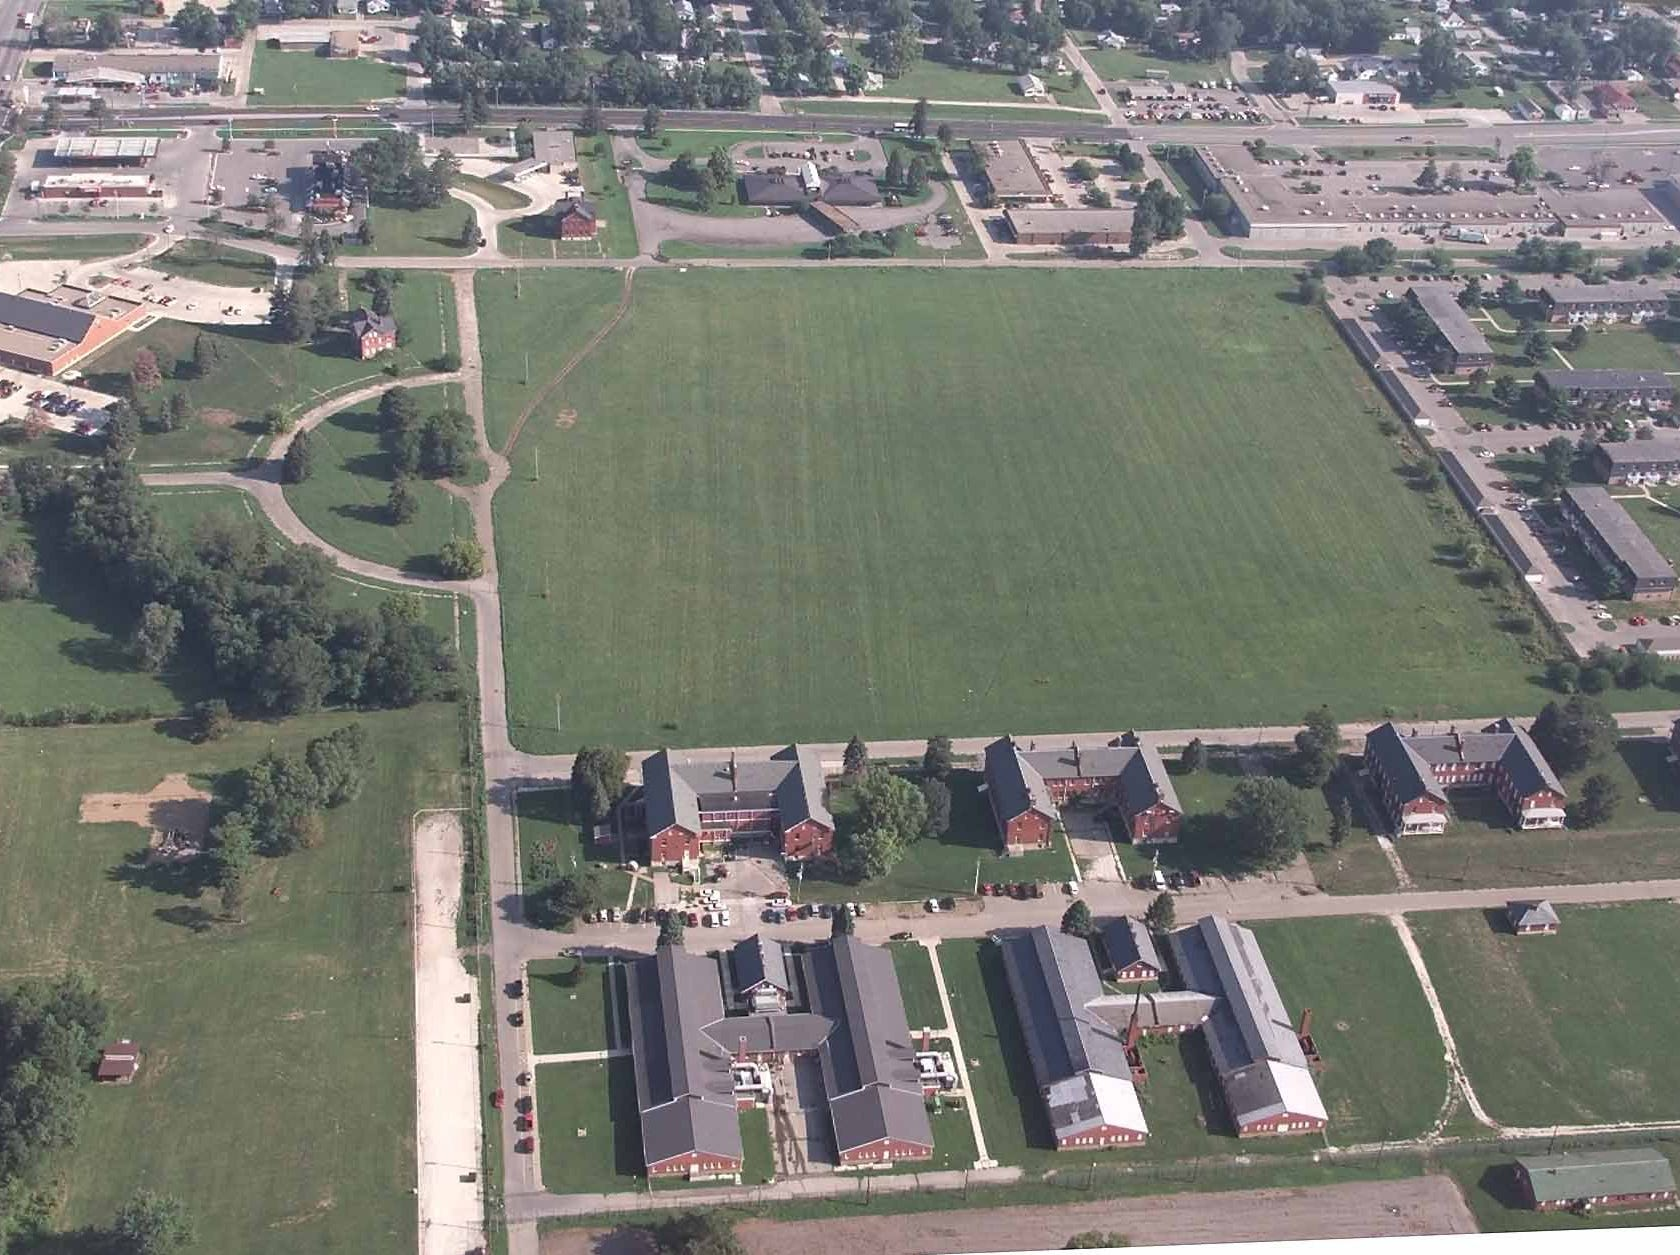 An aerial of Fort Des Moines showing the parade field (top) and the former barracks (bottom).